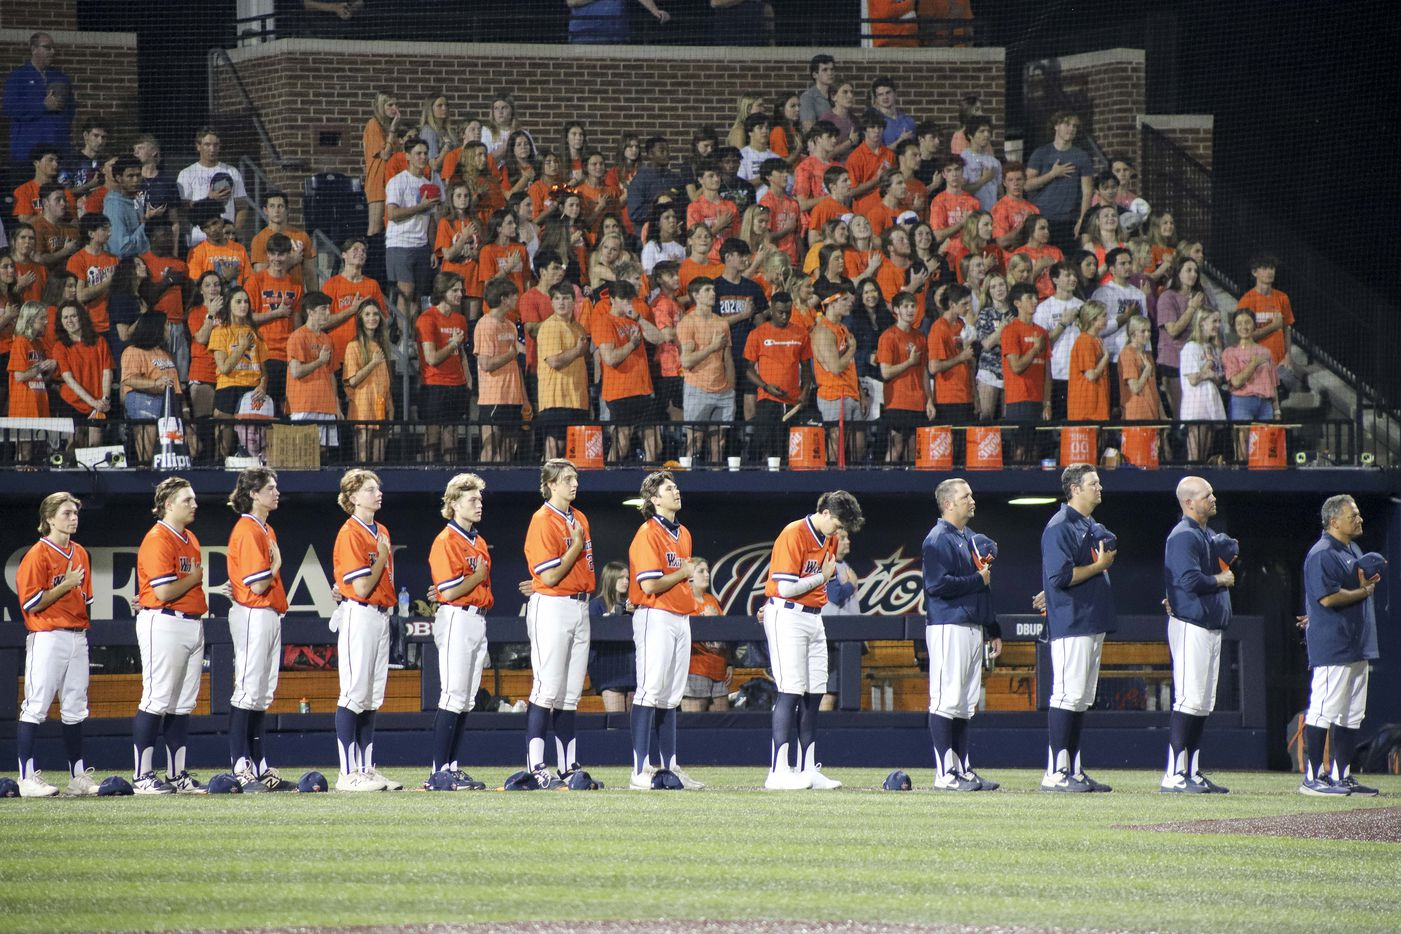 Frisco Wakeland stands for the national anthem before game two of the UIL baseball 5A Region II final series against Hallsville at Horner Ballpark in Dallas on Friday, June 4, 2021. (Elias Valverde II / Special Contributor)